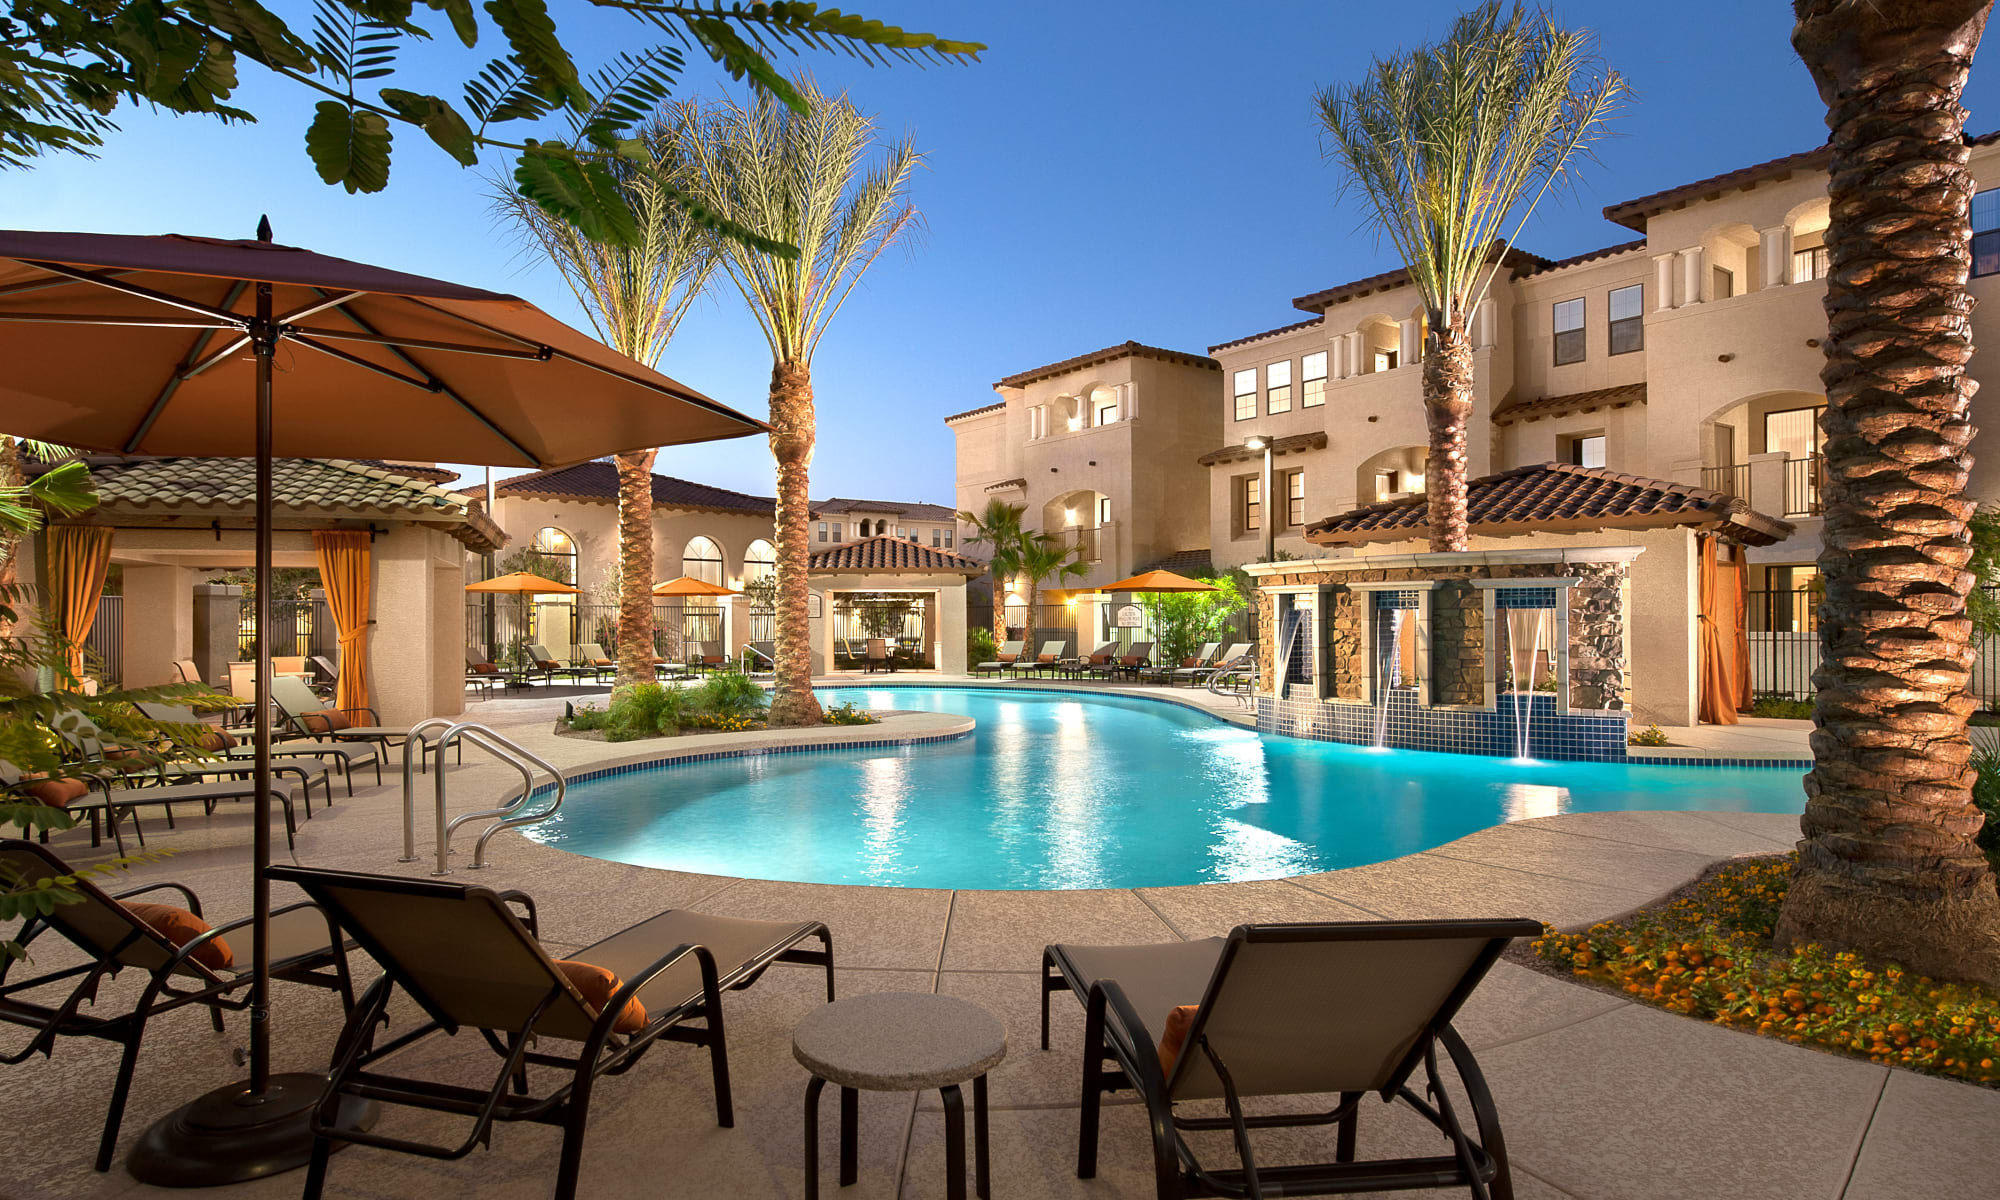 San Marquis apartments with an outdoor pool, in Tempe, Arizona